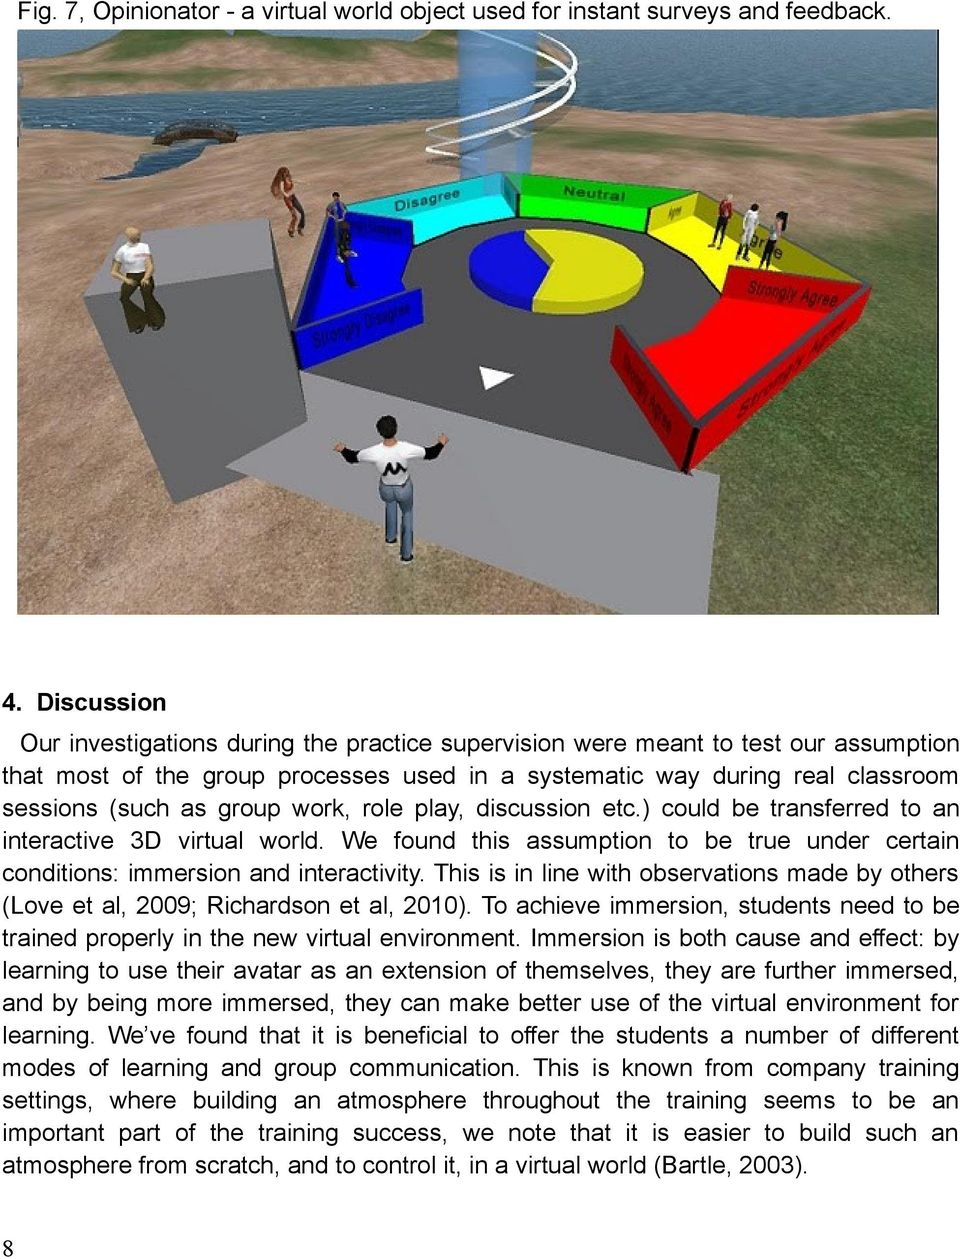 work, role play, discussion etc.) could be transferred to an interactive 3D virtual world. We found this assumption to be true under certain conditions: immersion and interactivity.